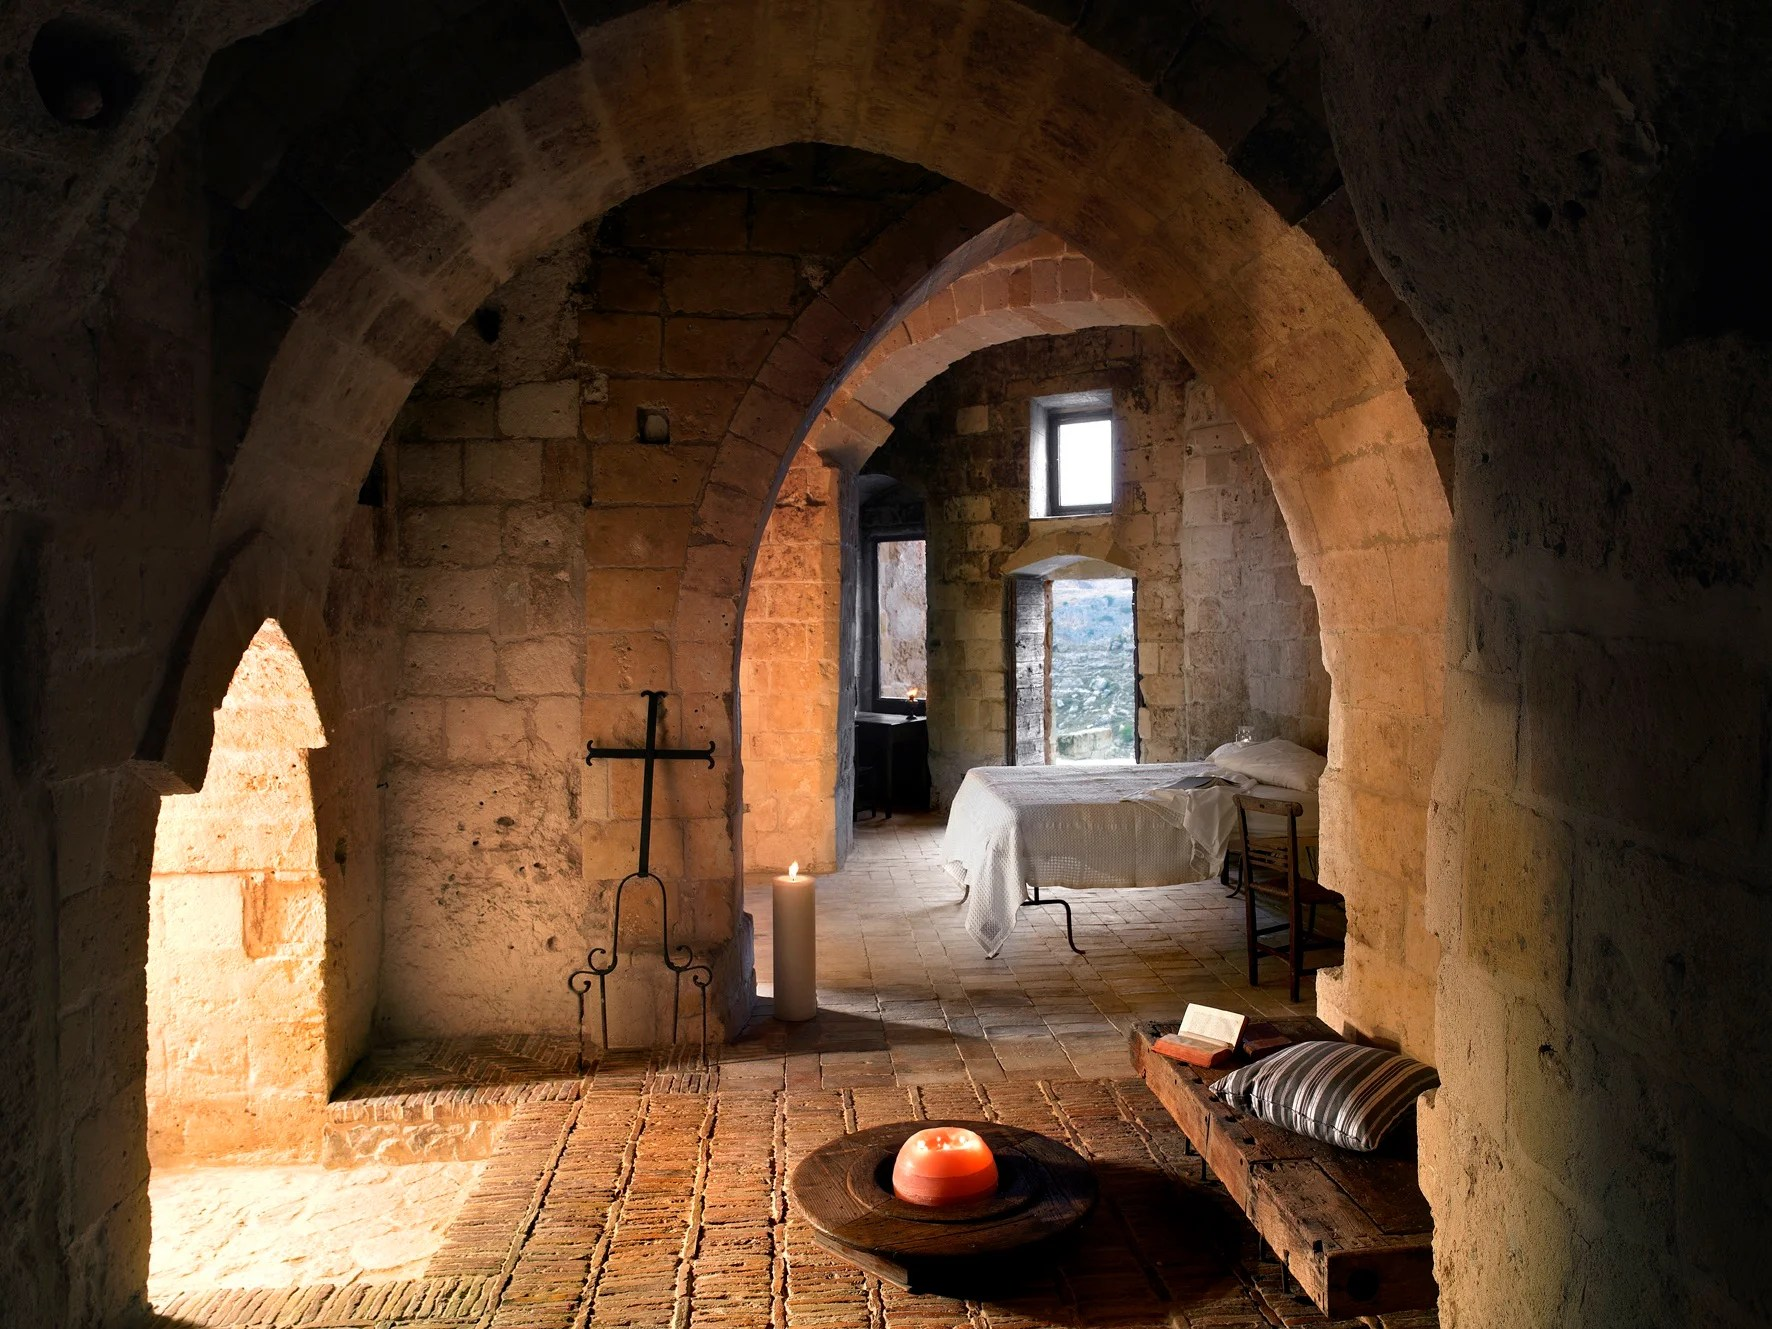 Sextantio Grotte della Civiltà hotel in Matera. Photo courtesy of Design Hotels